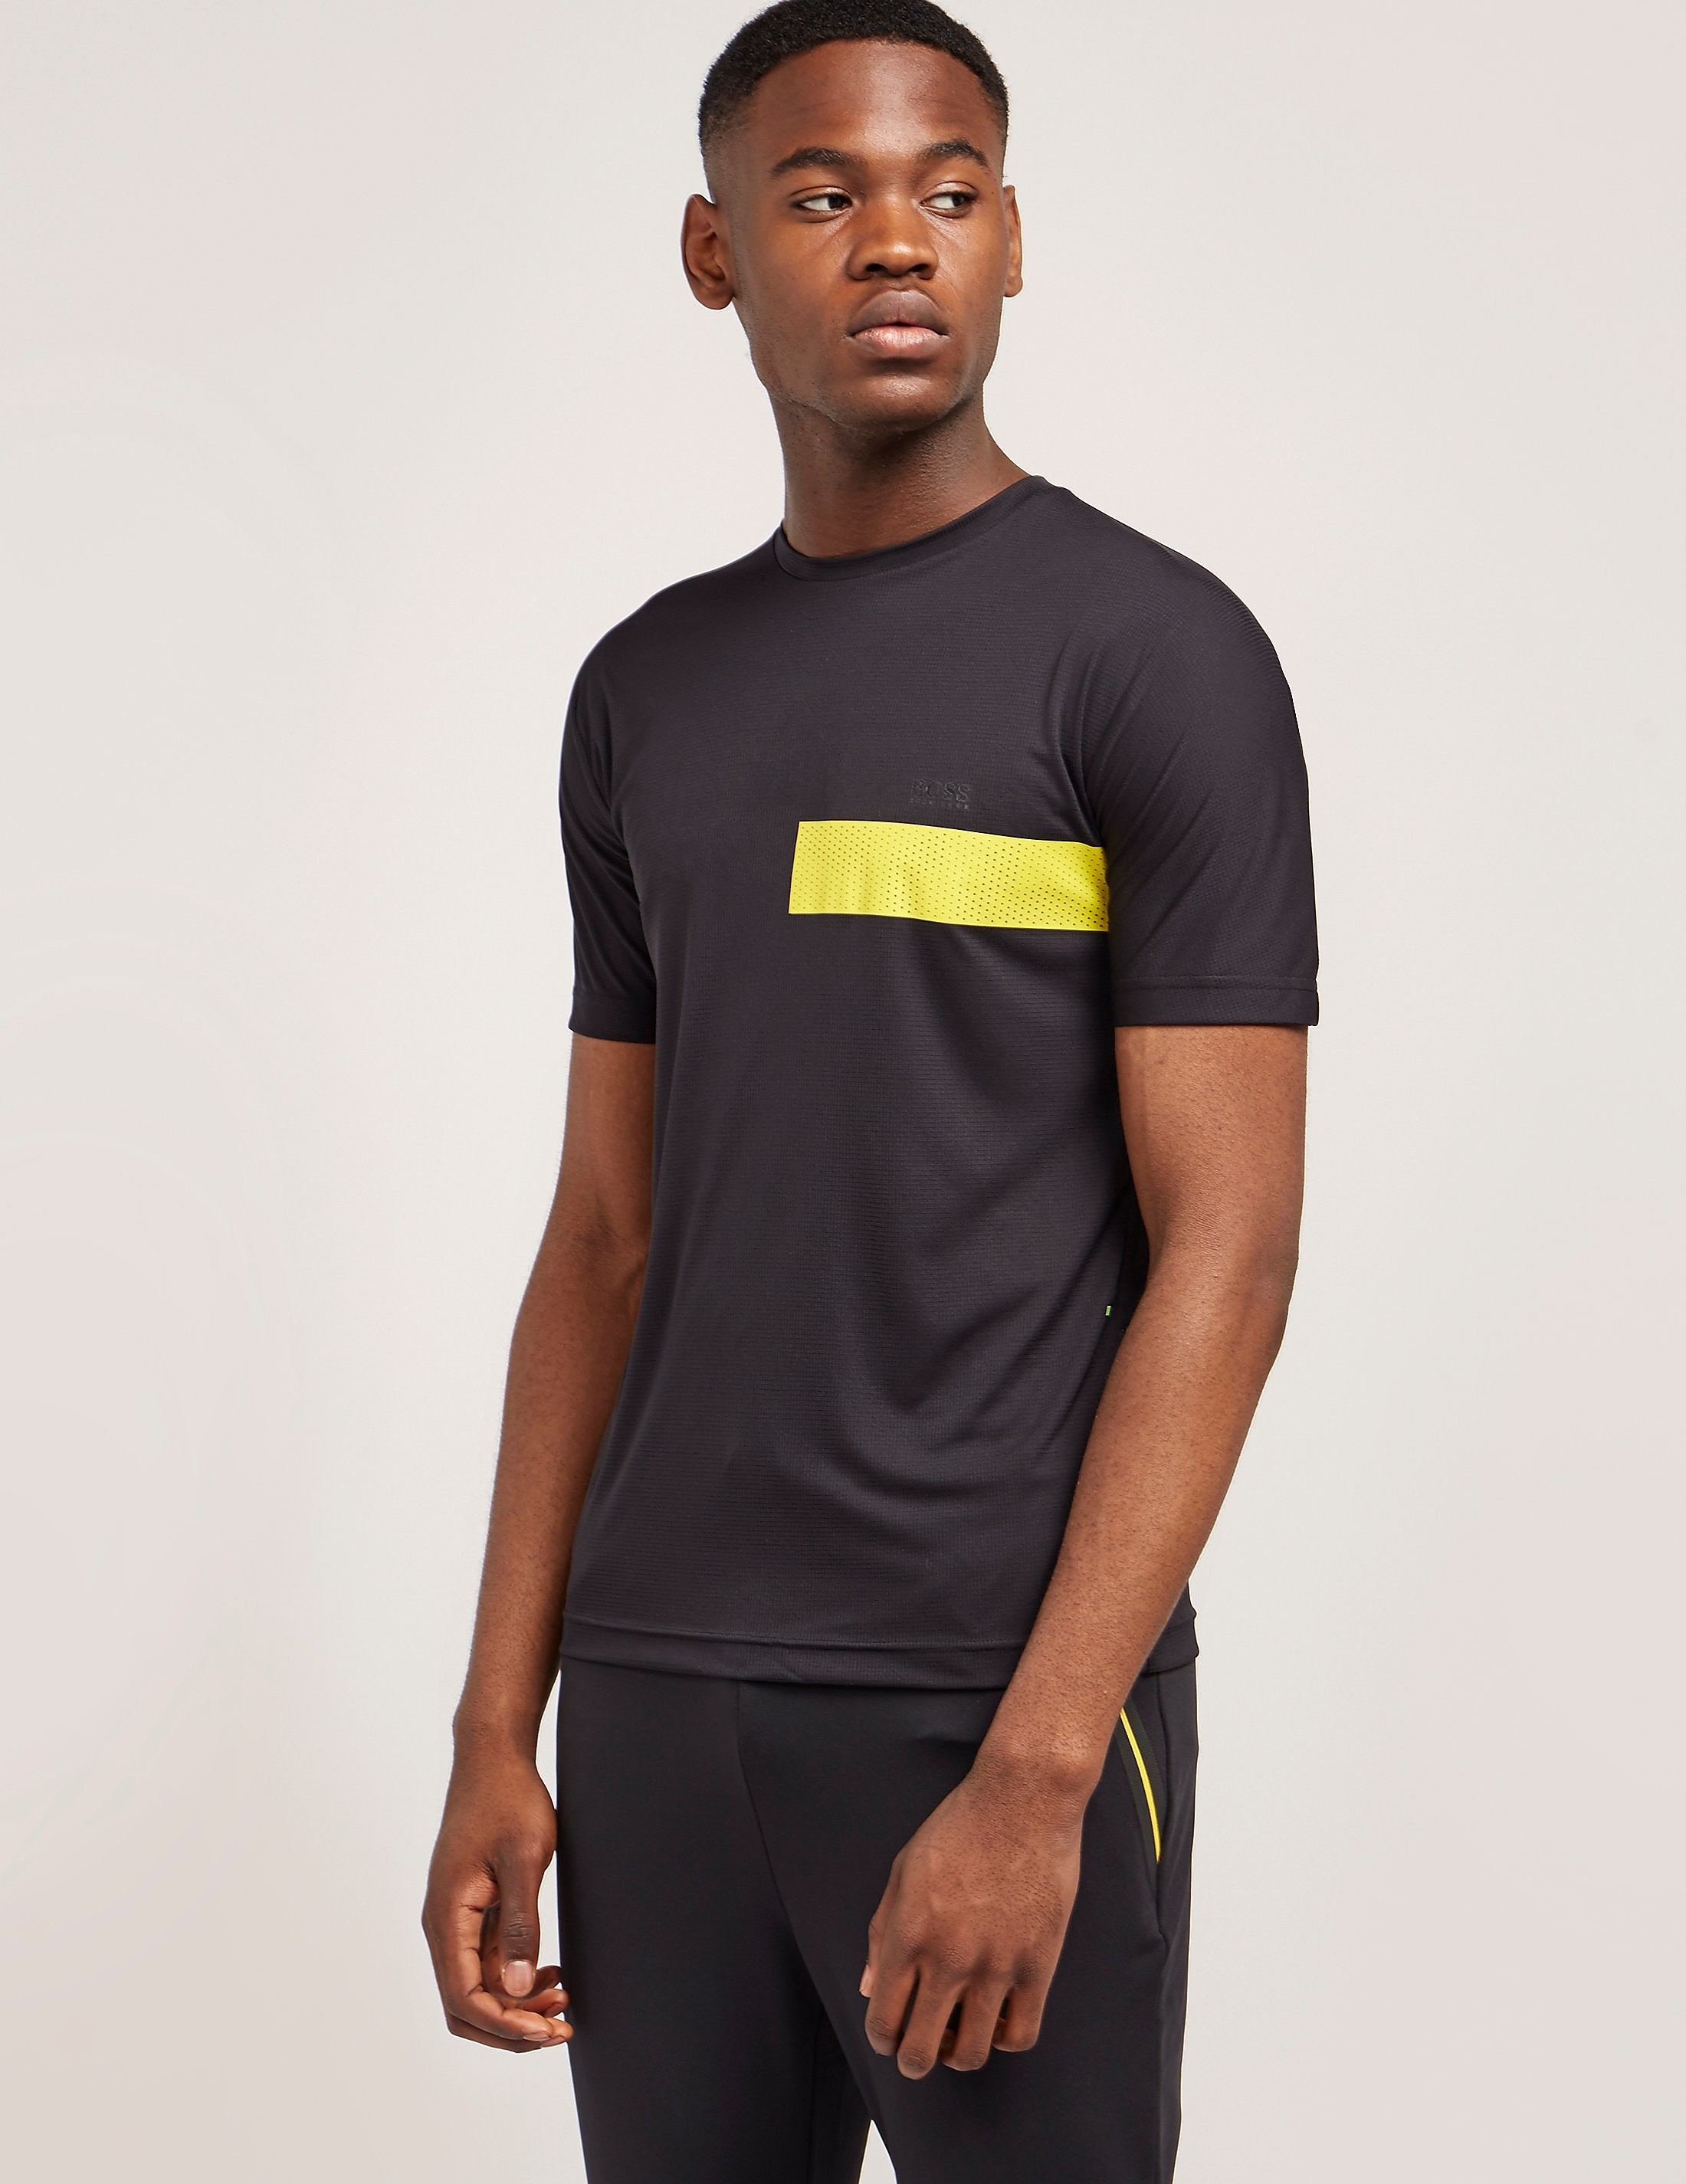 BOSS Green Stripe Short Sleeve T-Shirt